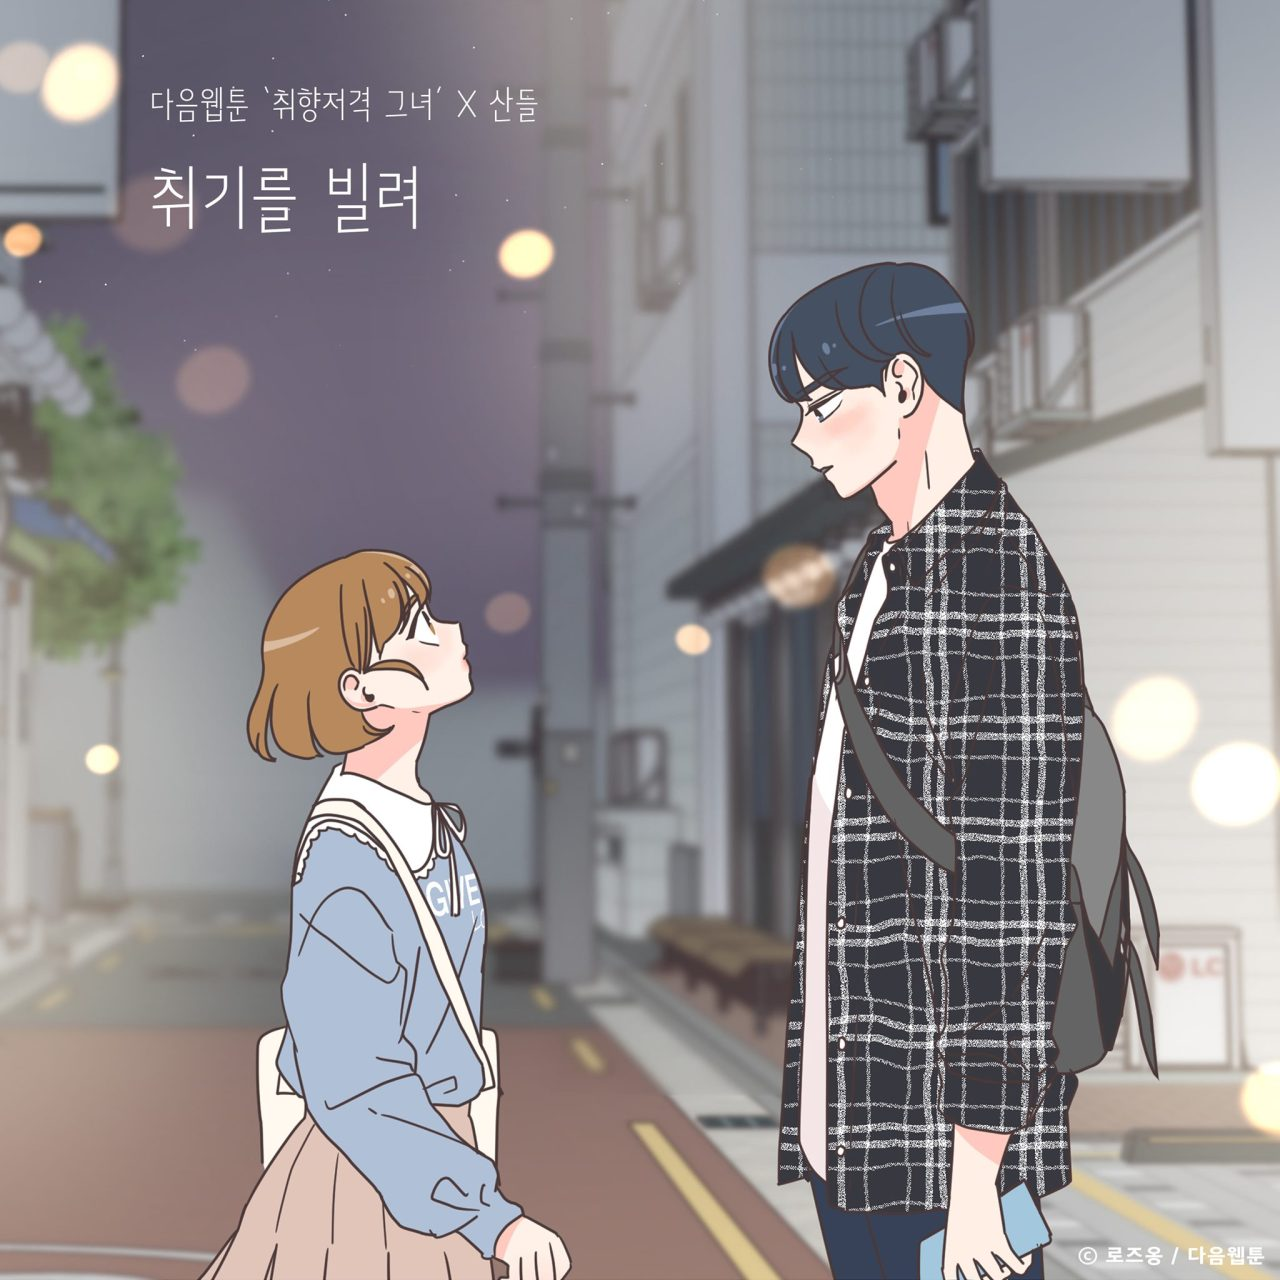 """Slightly Tipsy"" by Sandeul. (Daum Webtoon)"